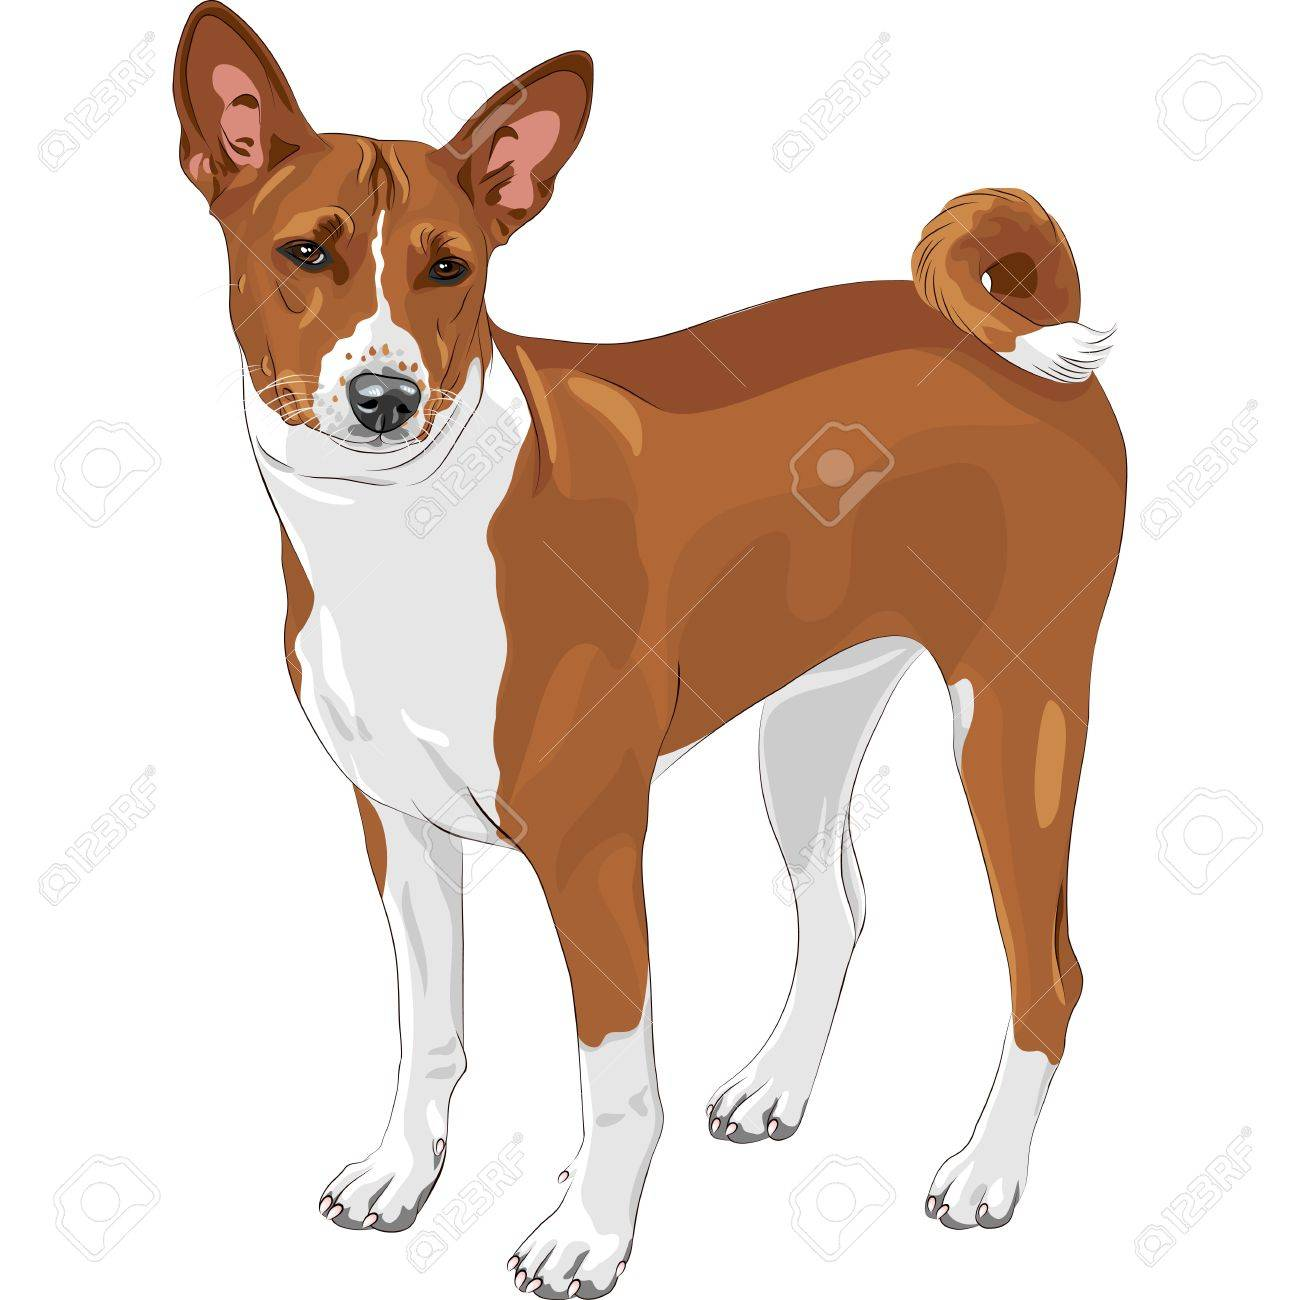 color sketch of the hunting dog Basenji  breed Stock Vector - 14733311